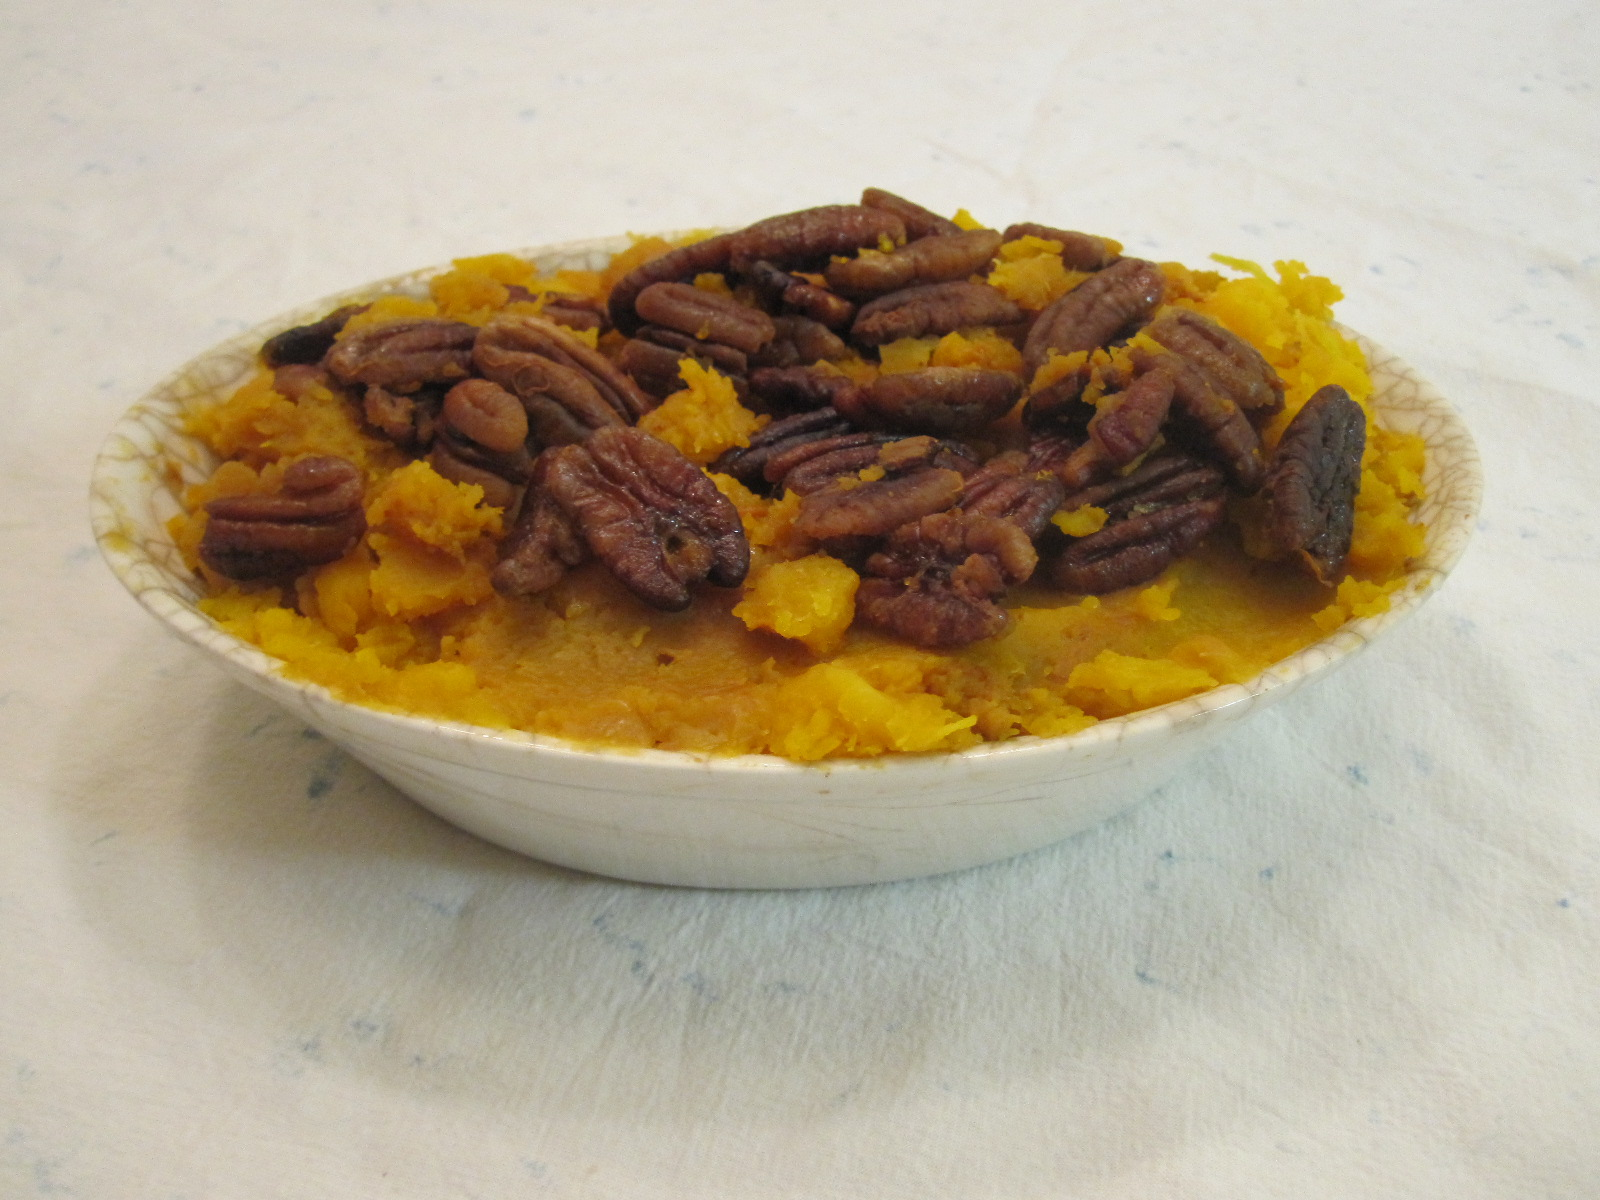 Whipped Butternut Squash with Cloves and Pecans